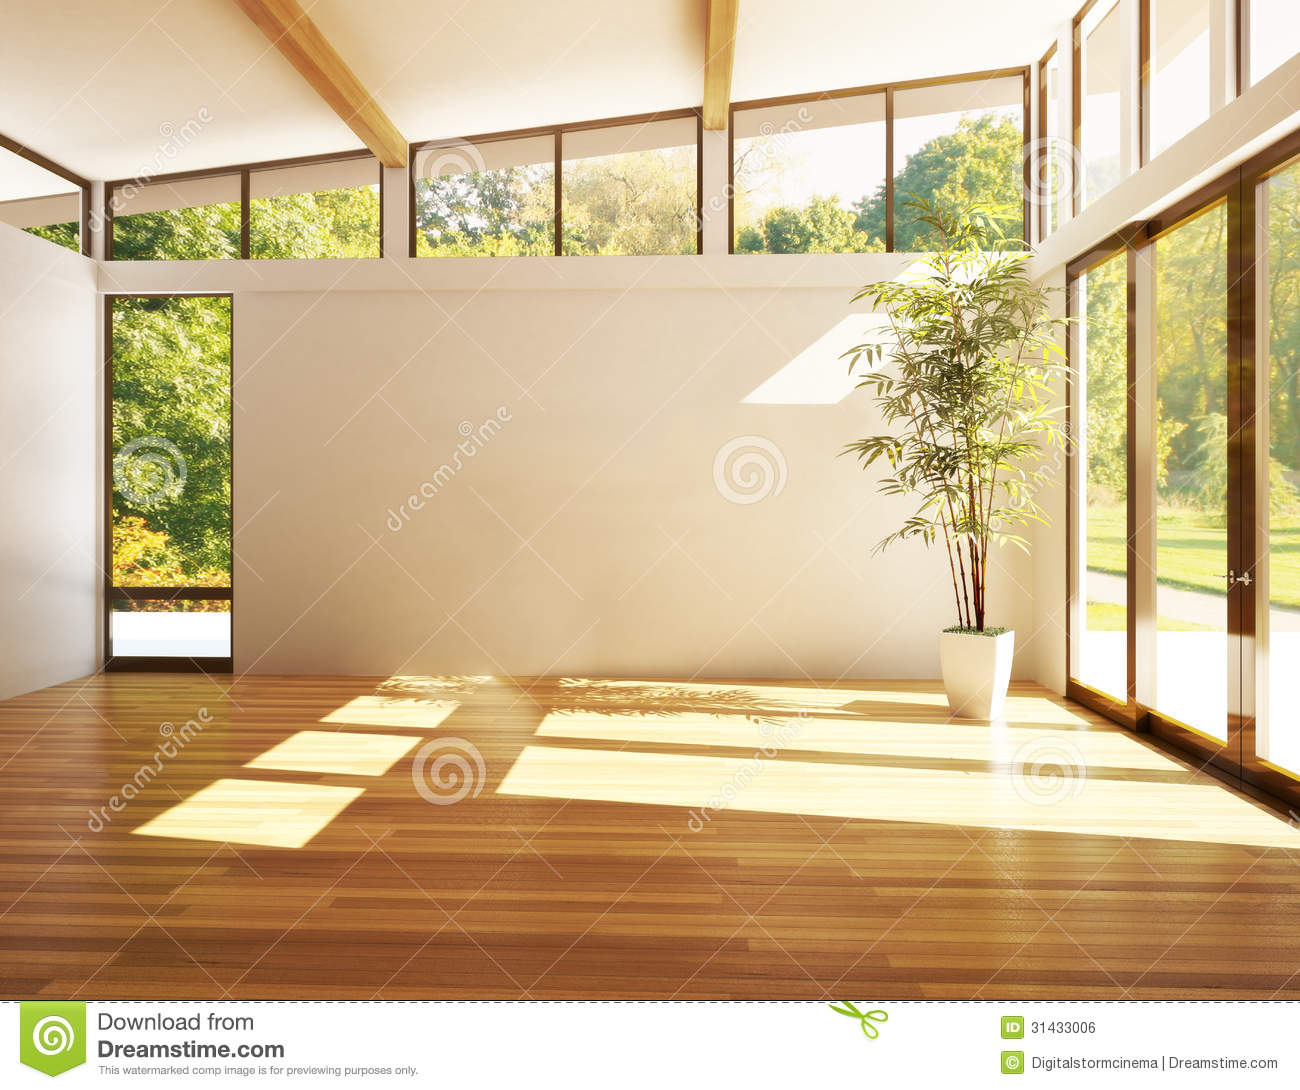 Room Background: Empty Room Of Business, Or Residence With Woods Background